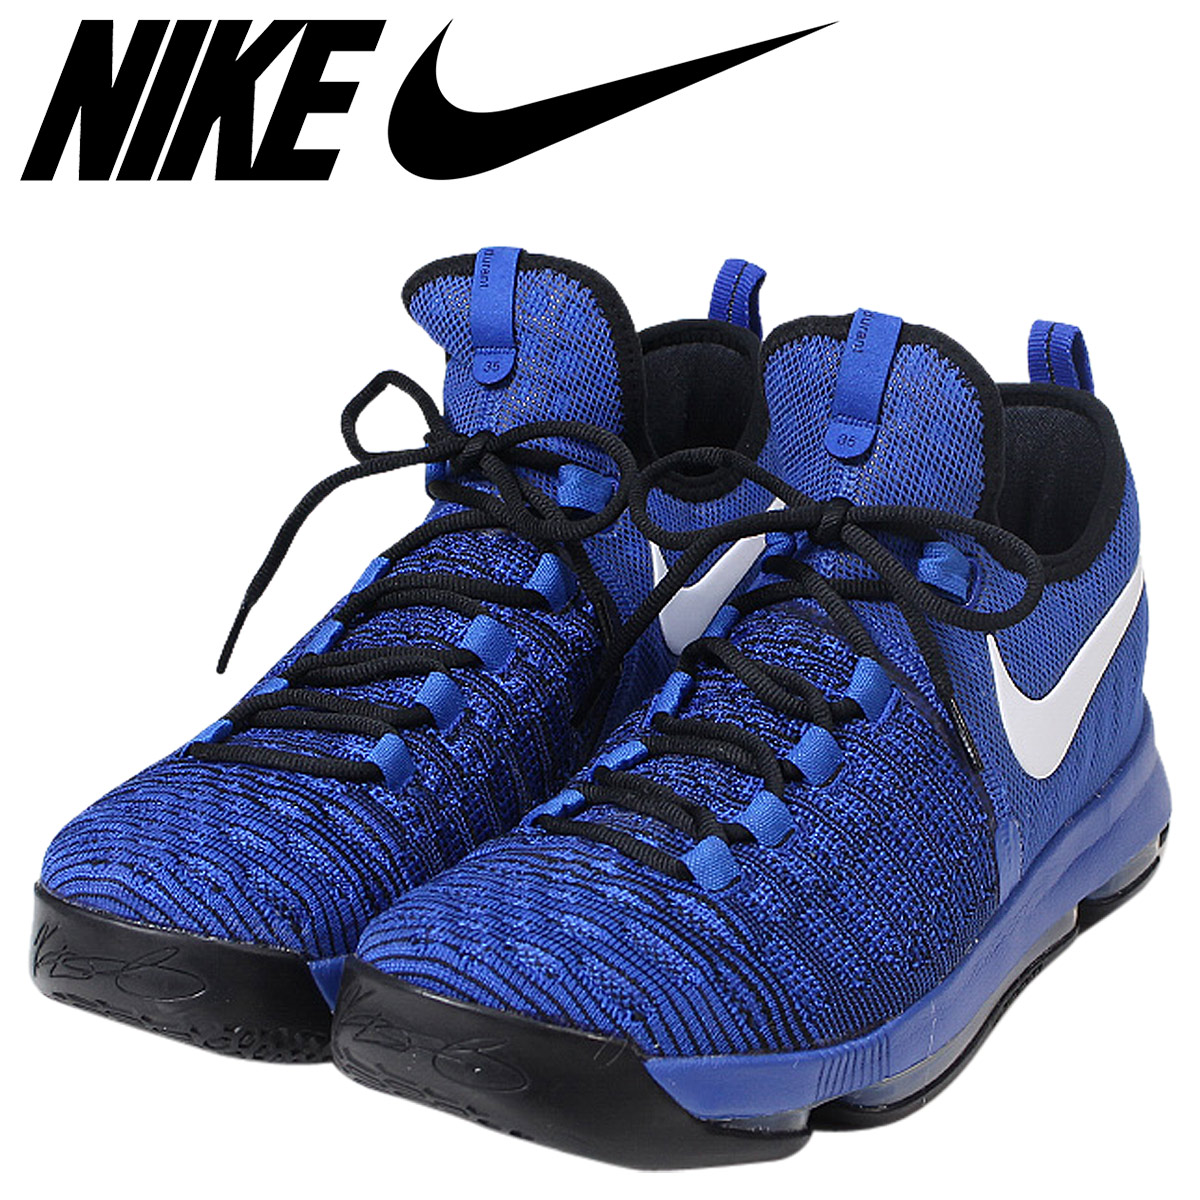 8559034679d7 ... black red mens basketball shoes bbfb7 43cb0  germany nike nike zoom kd9  sneakers zoom kd 9 ep game royal white men 844382 410